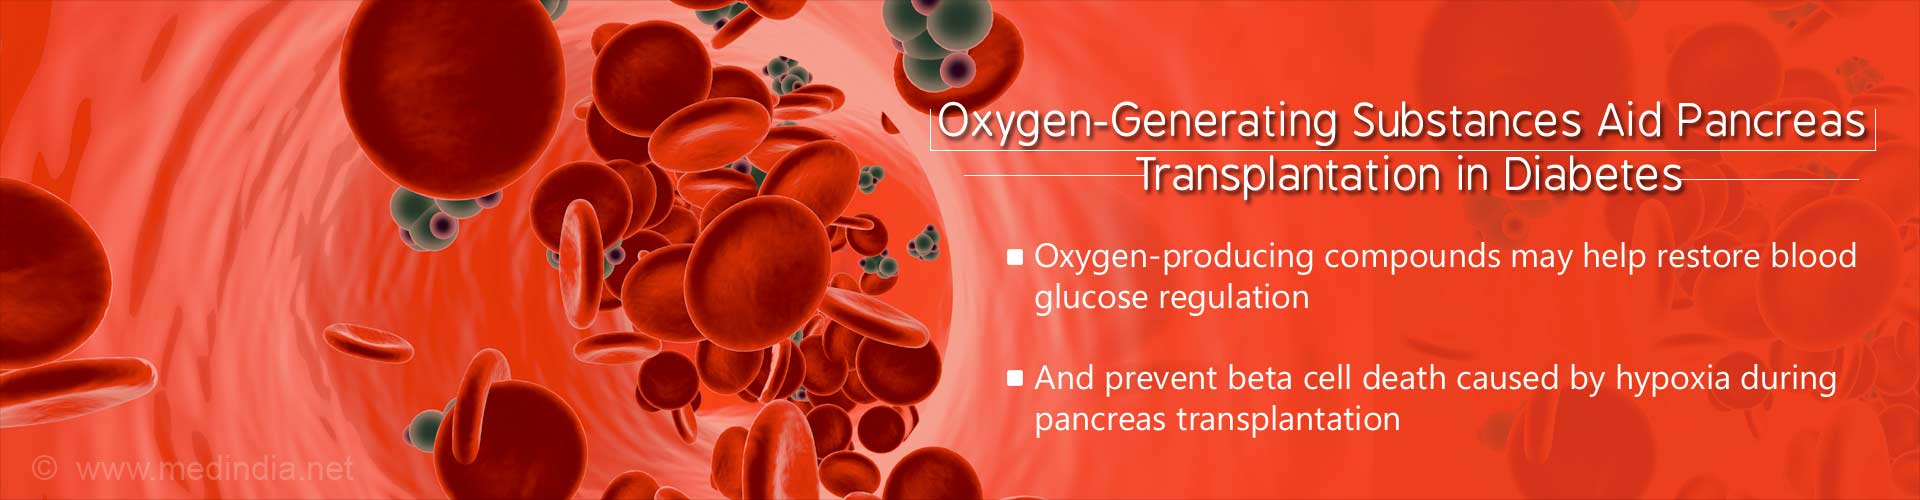 Oxygen-Generating Substances for Diabetes Treatment